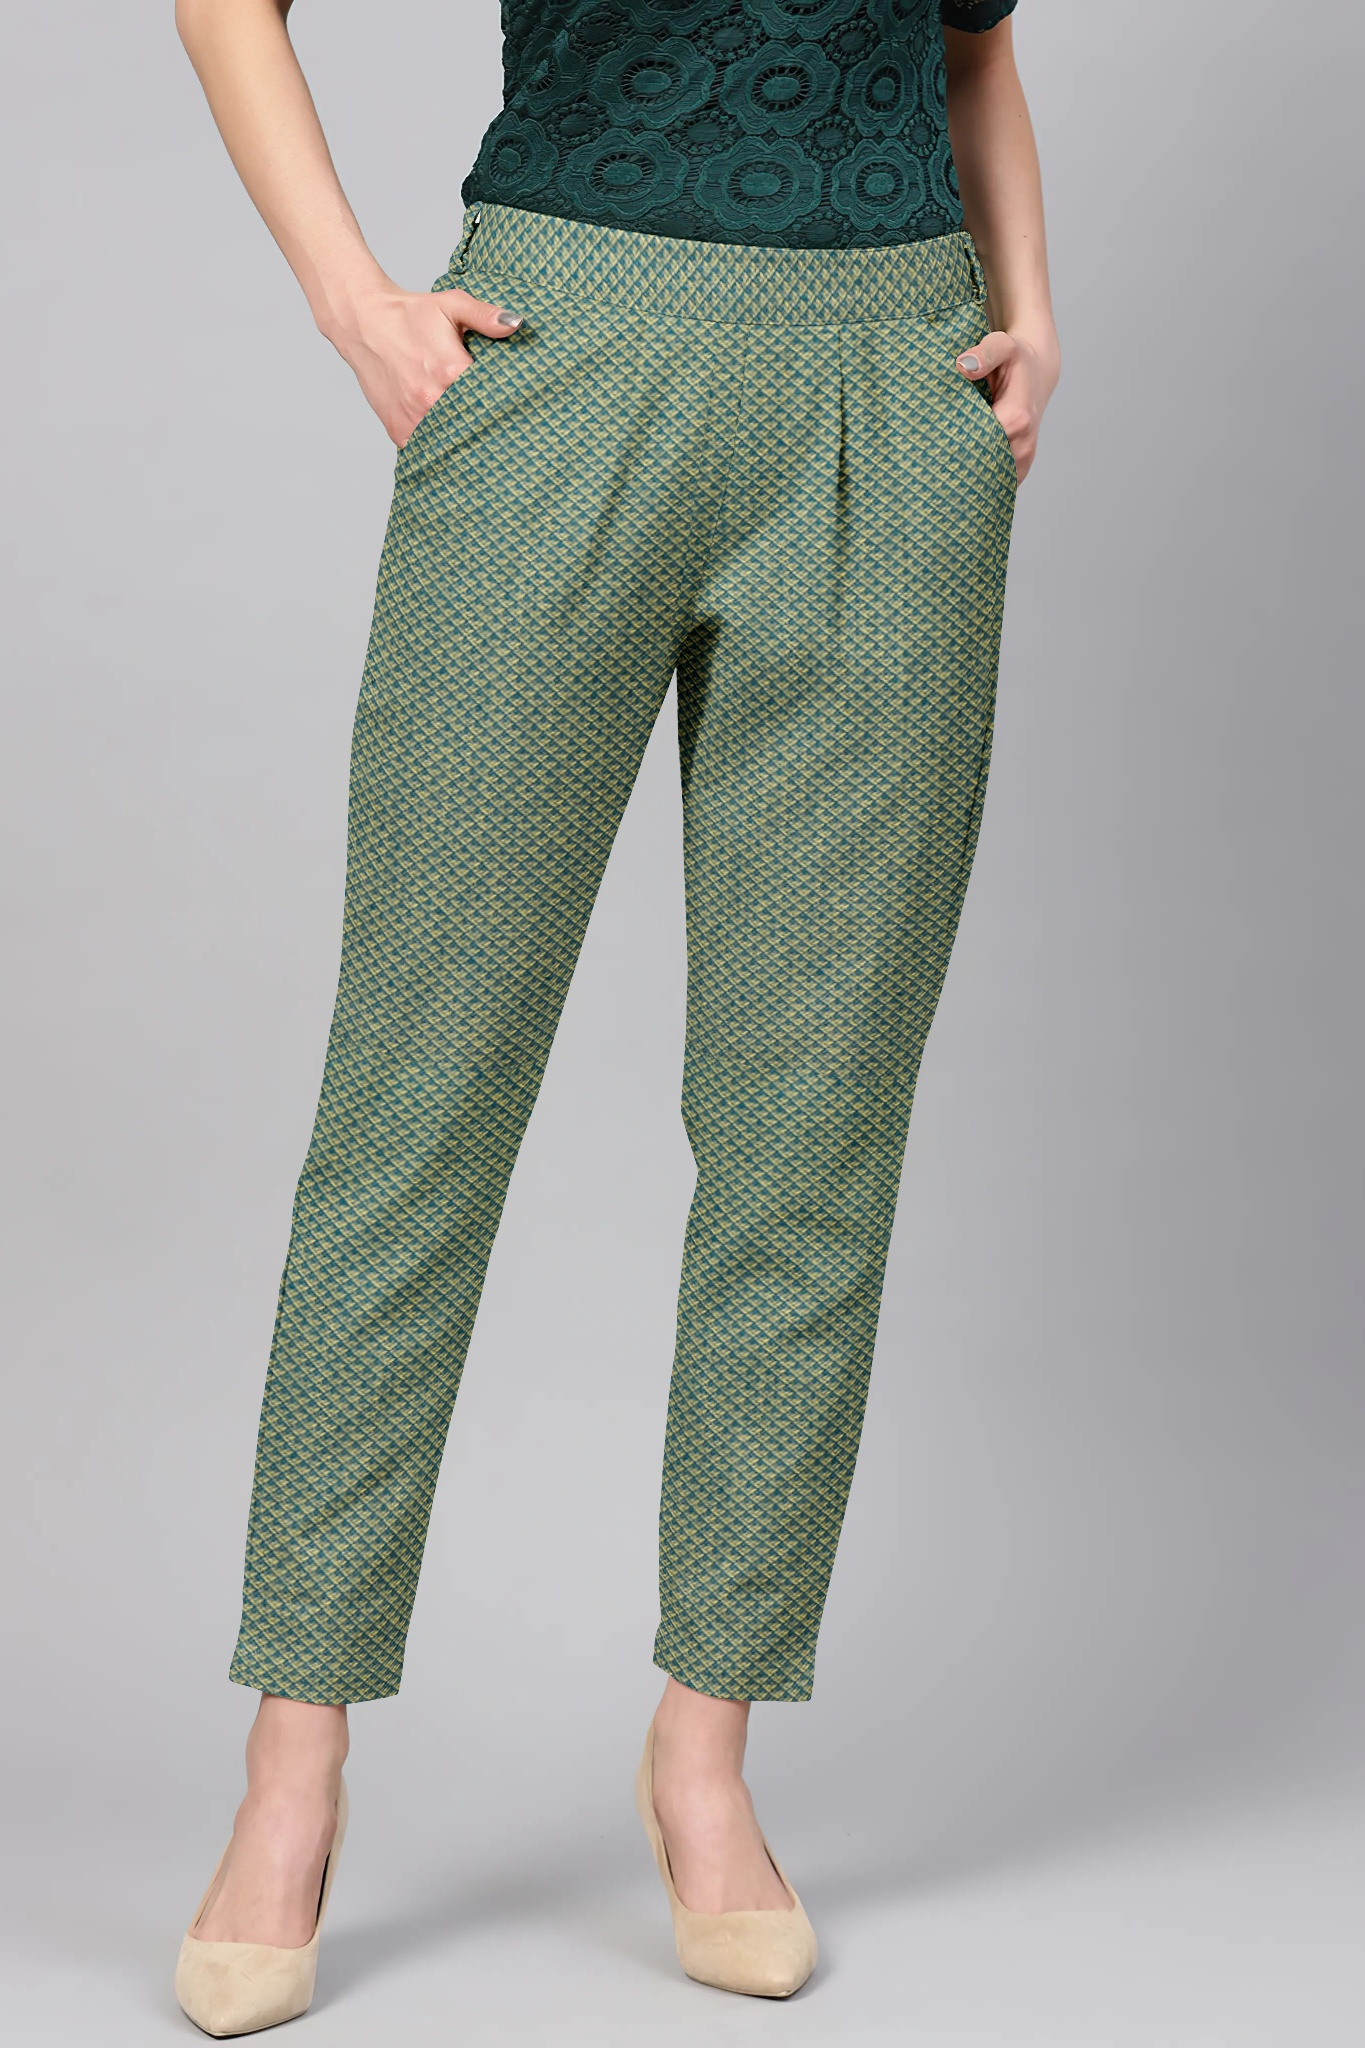 Green Cream Cotton Polka Regular Fit Solid Trouser-36079